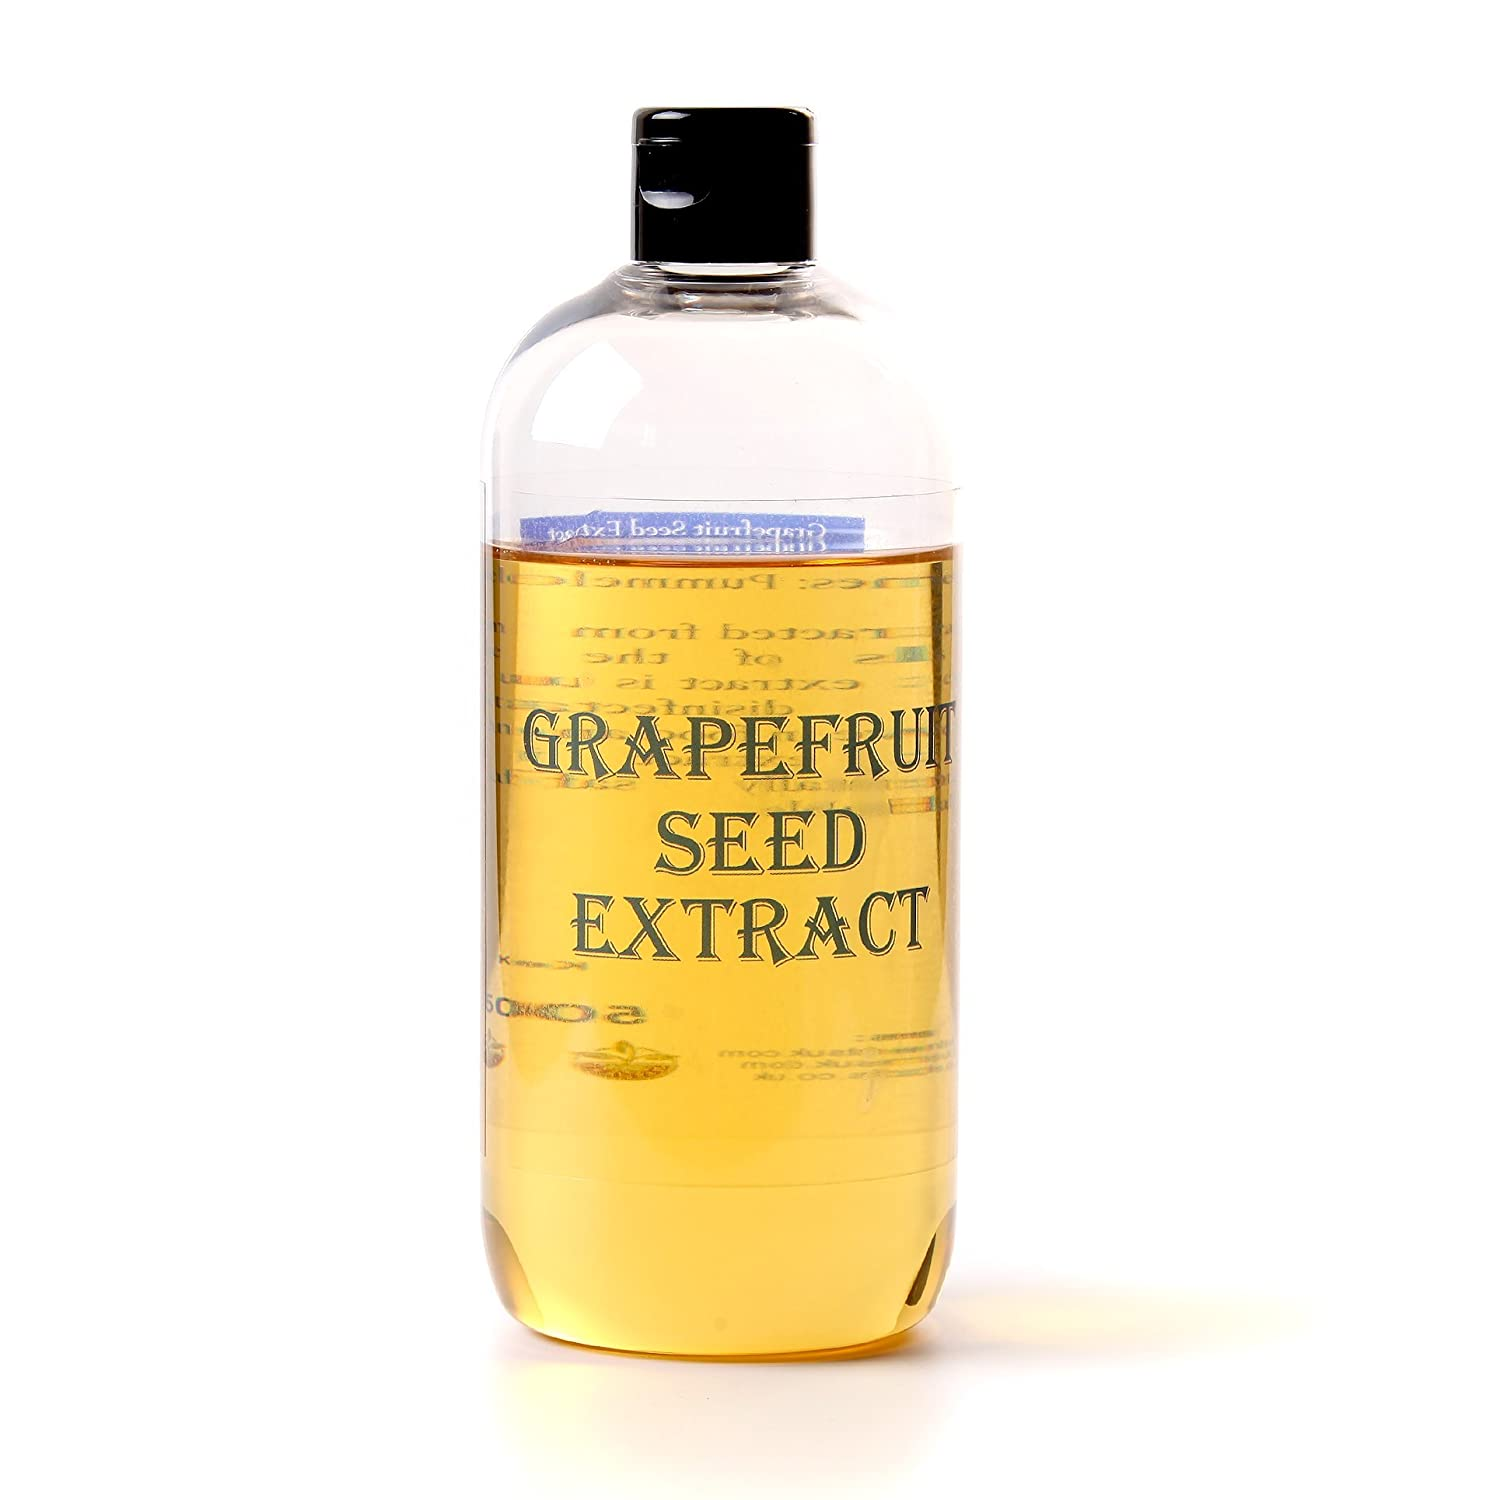 Grapefruit Seed Extract Antioxidant 500g (Pummelo Seed Extract G2) B01GQ389T8